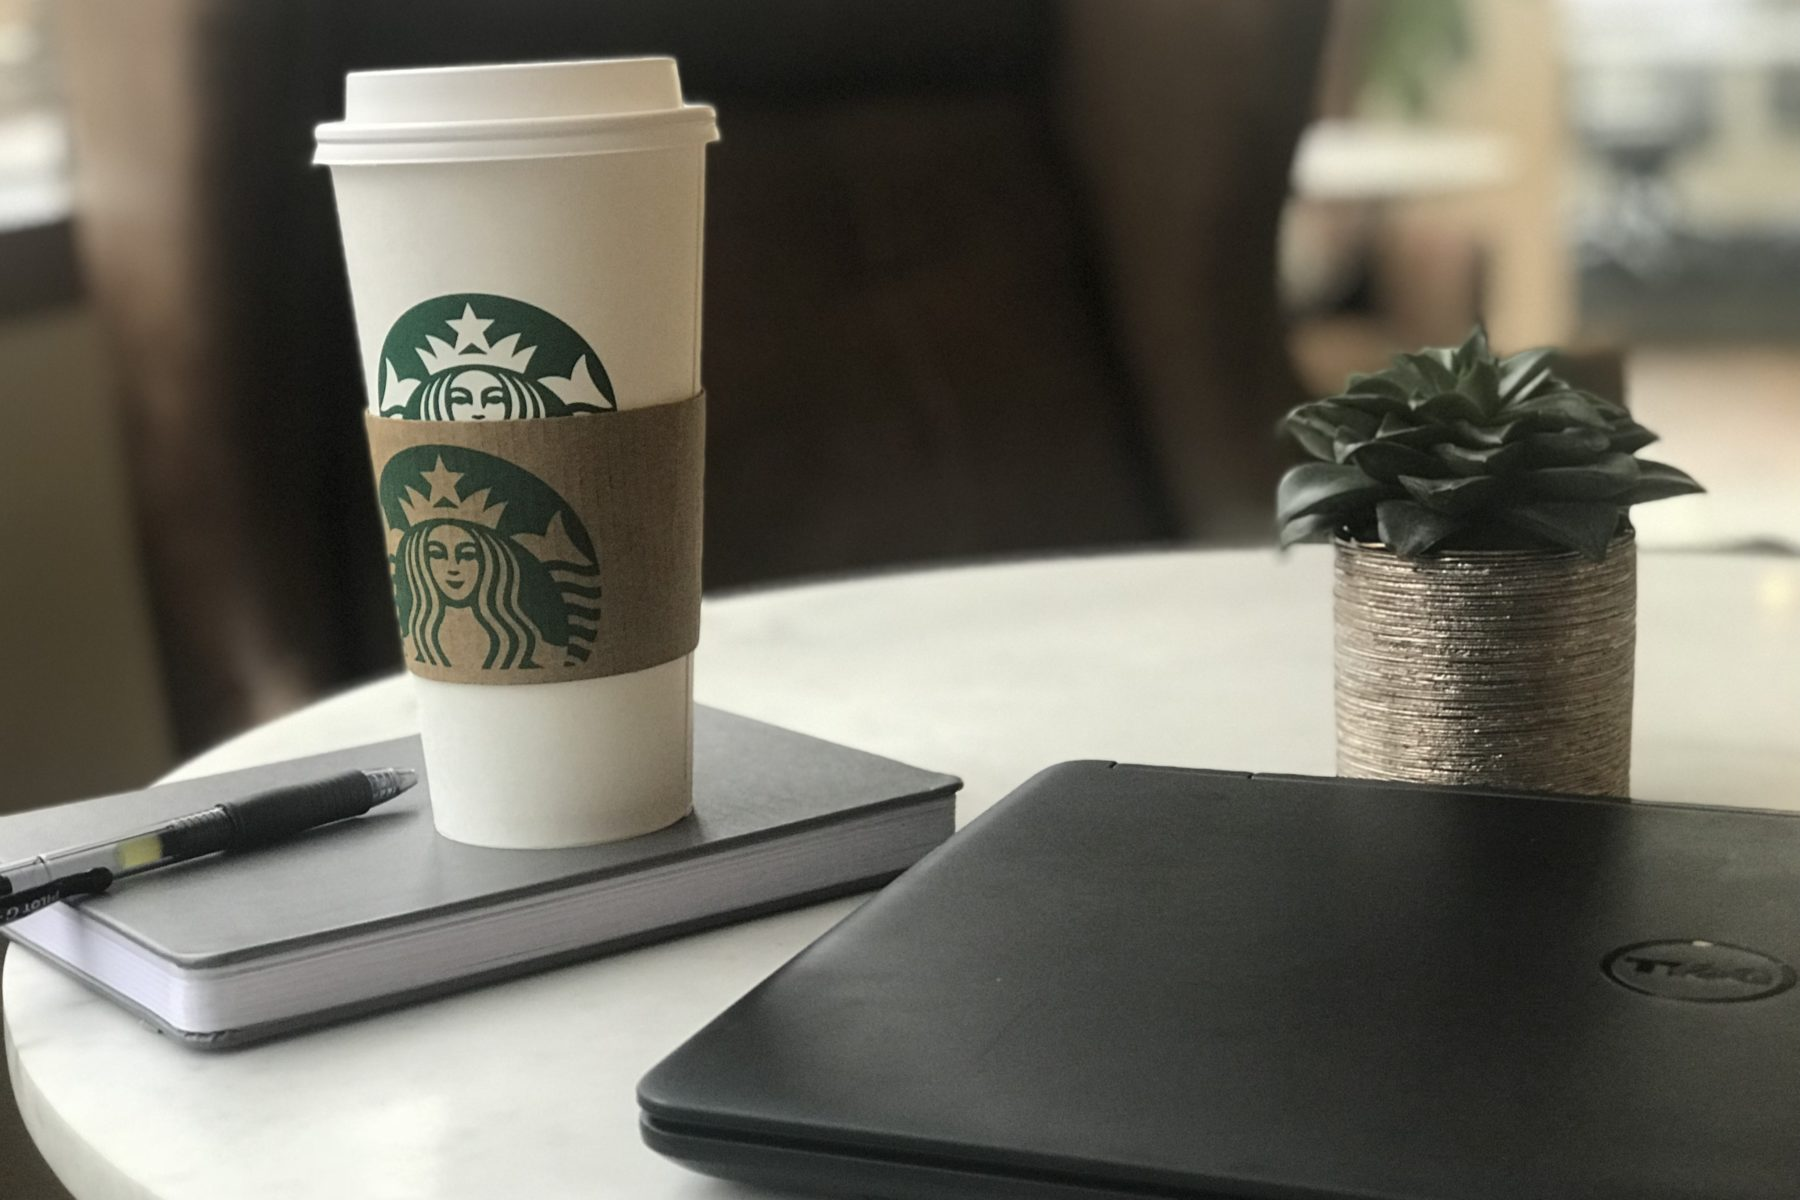 laptop next to a starbucks cup, pen and a notebook